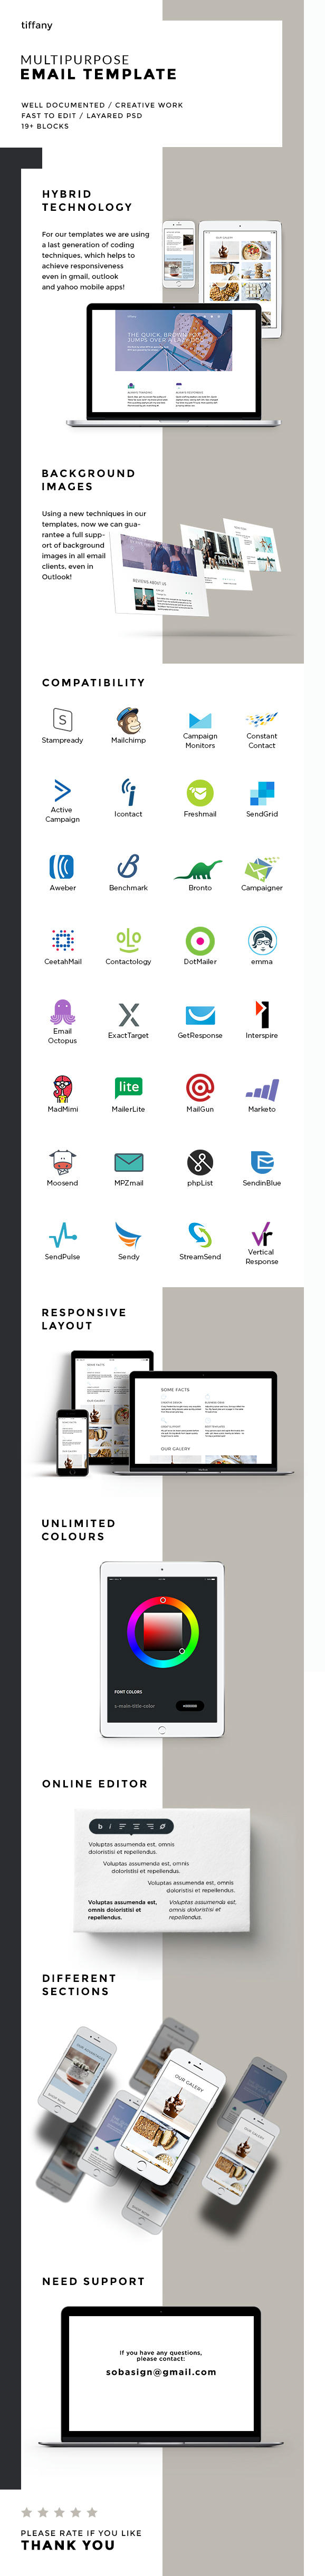 Tiffany – Responsive Multipurpose Email Template + Stampready Builder (Email Templates)